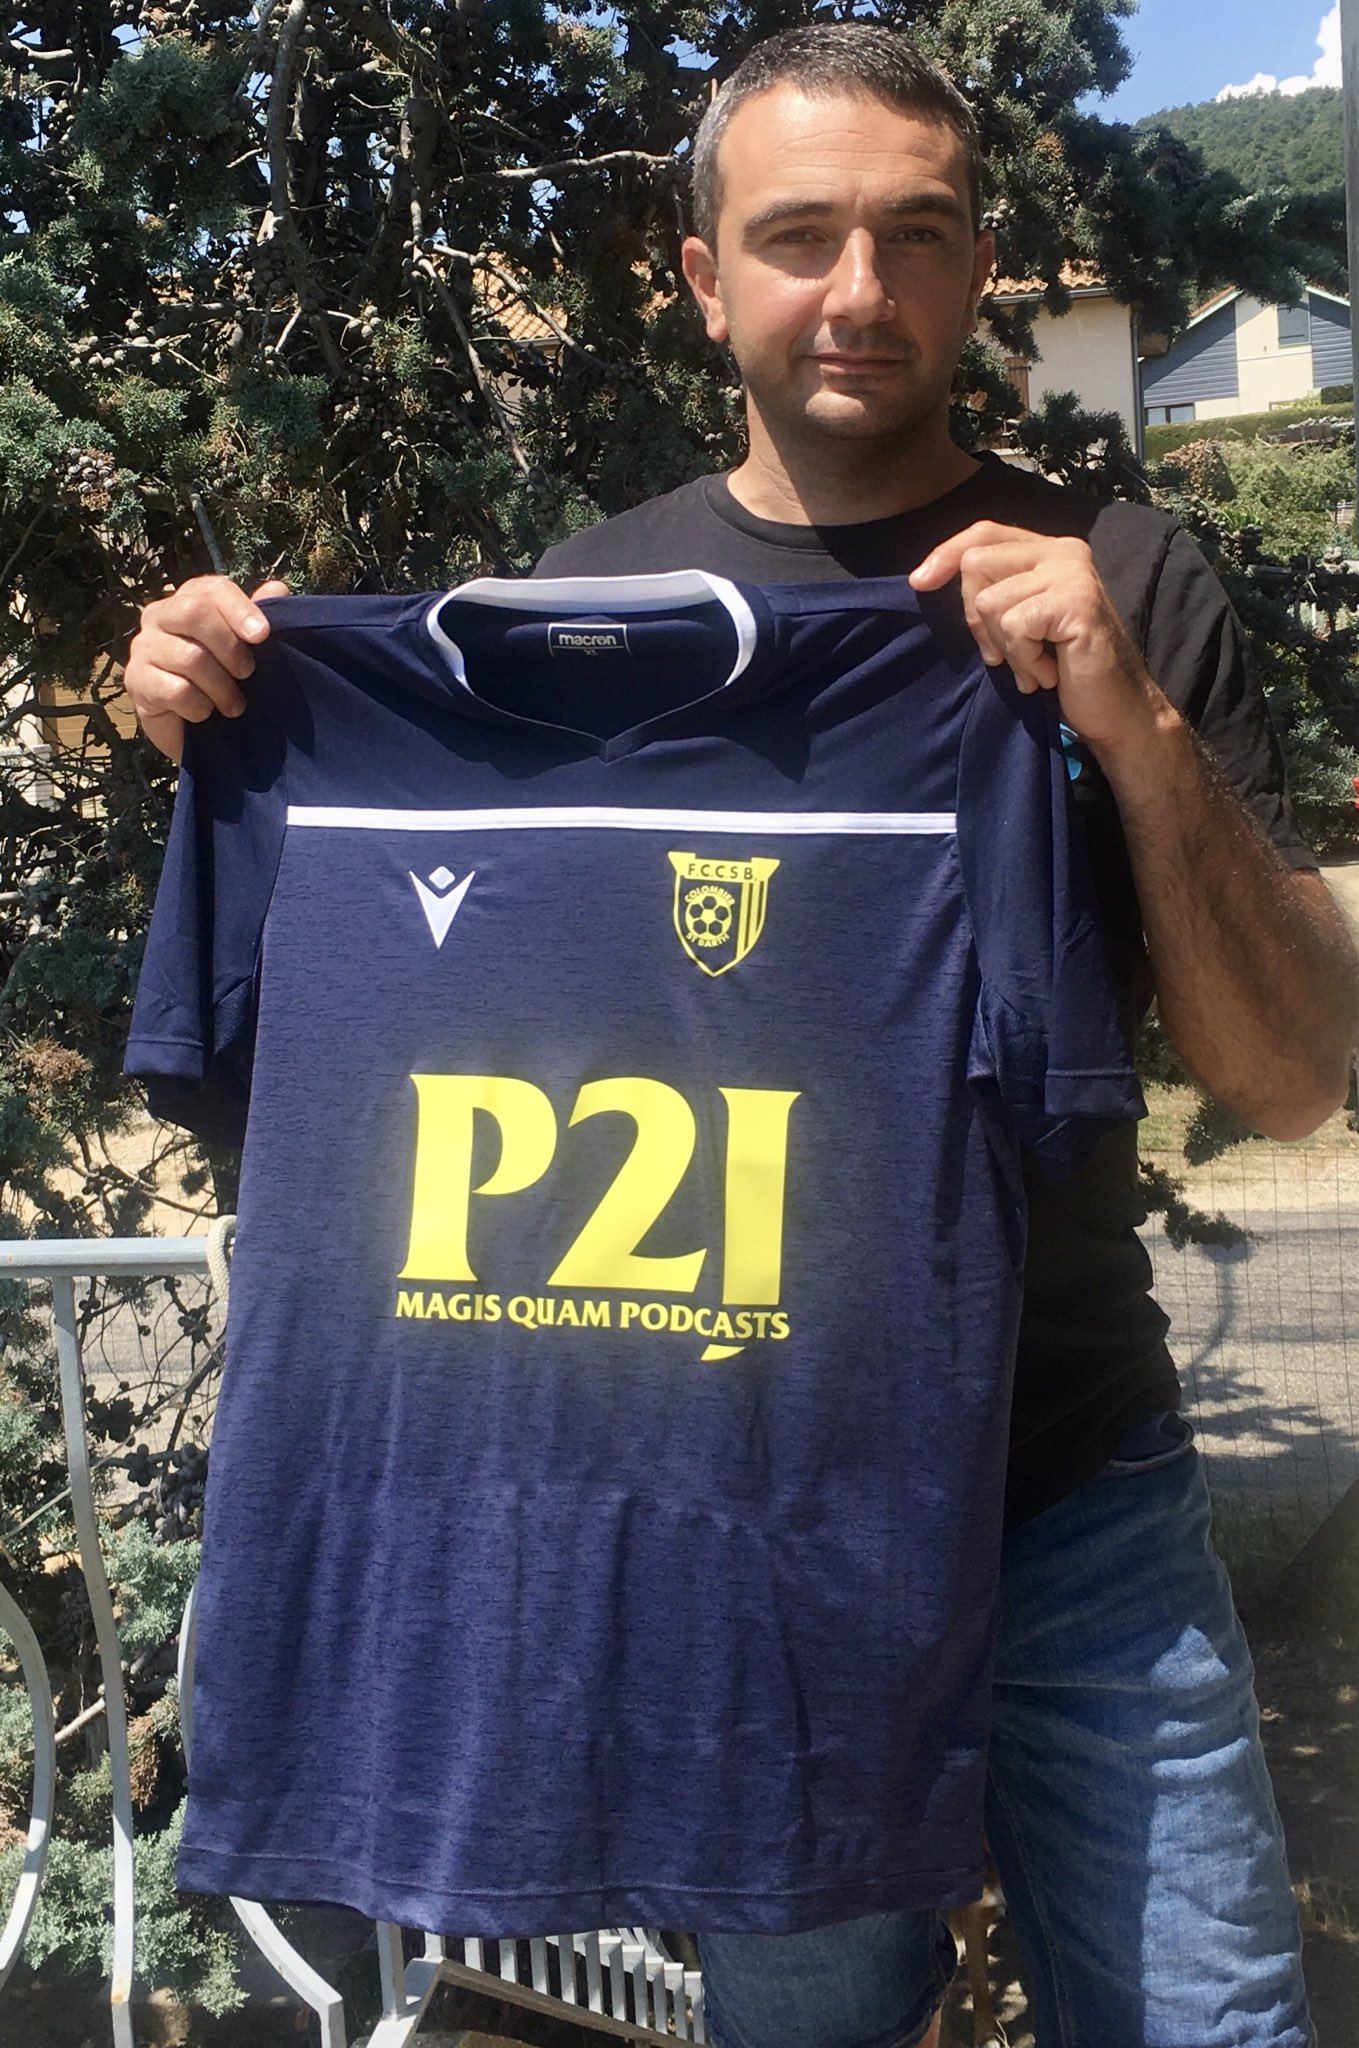 fccsb-maillot